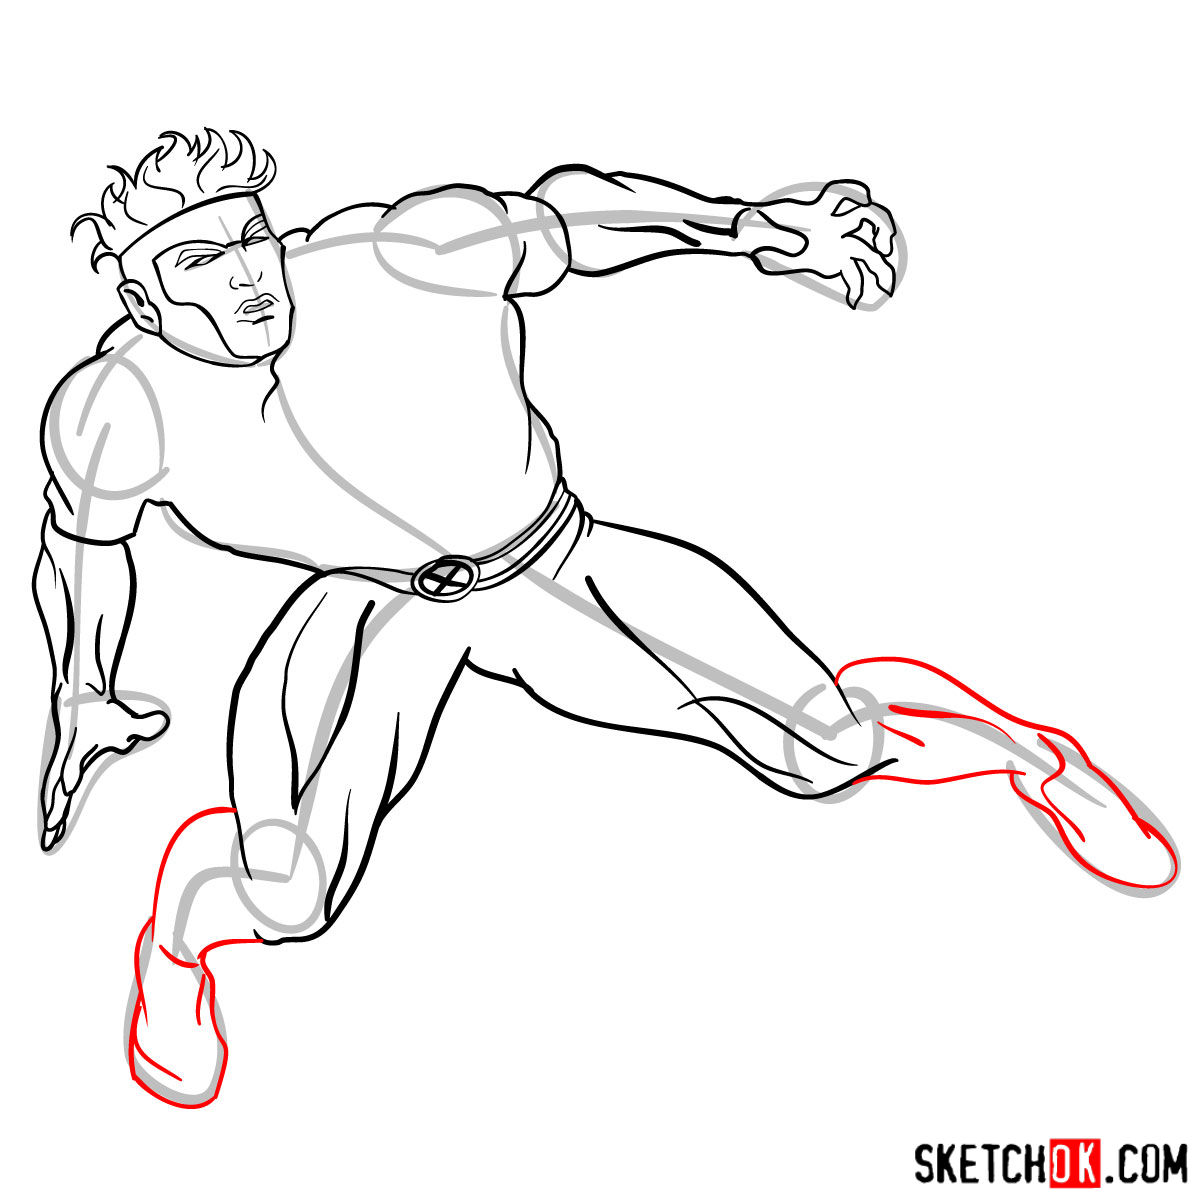 How to draw Havok from X-Men series - step by step tutorial - step 11